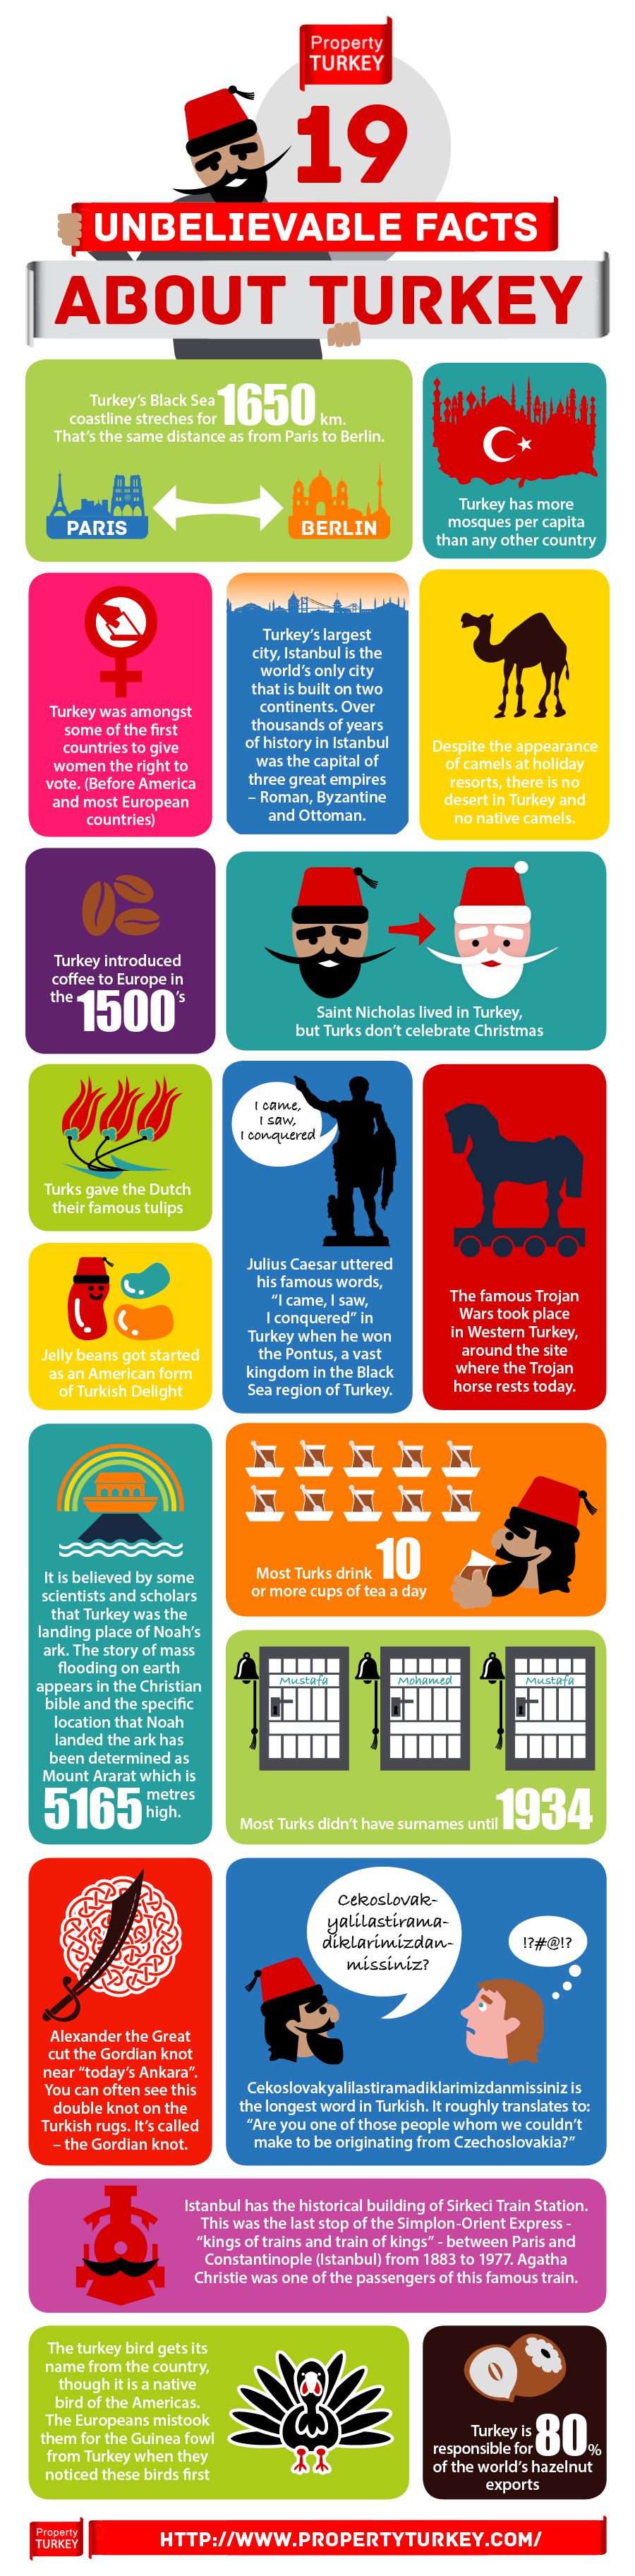 Unbelievable facts about Turkey